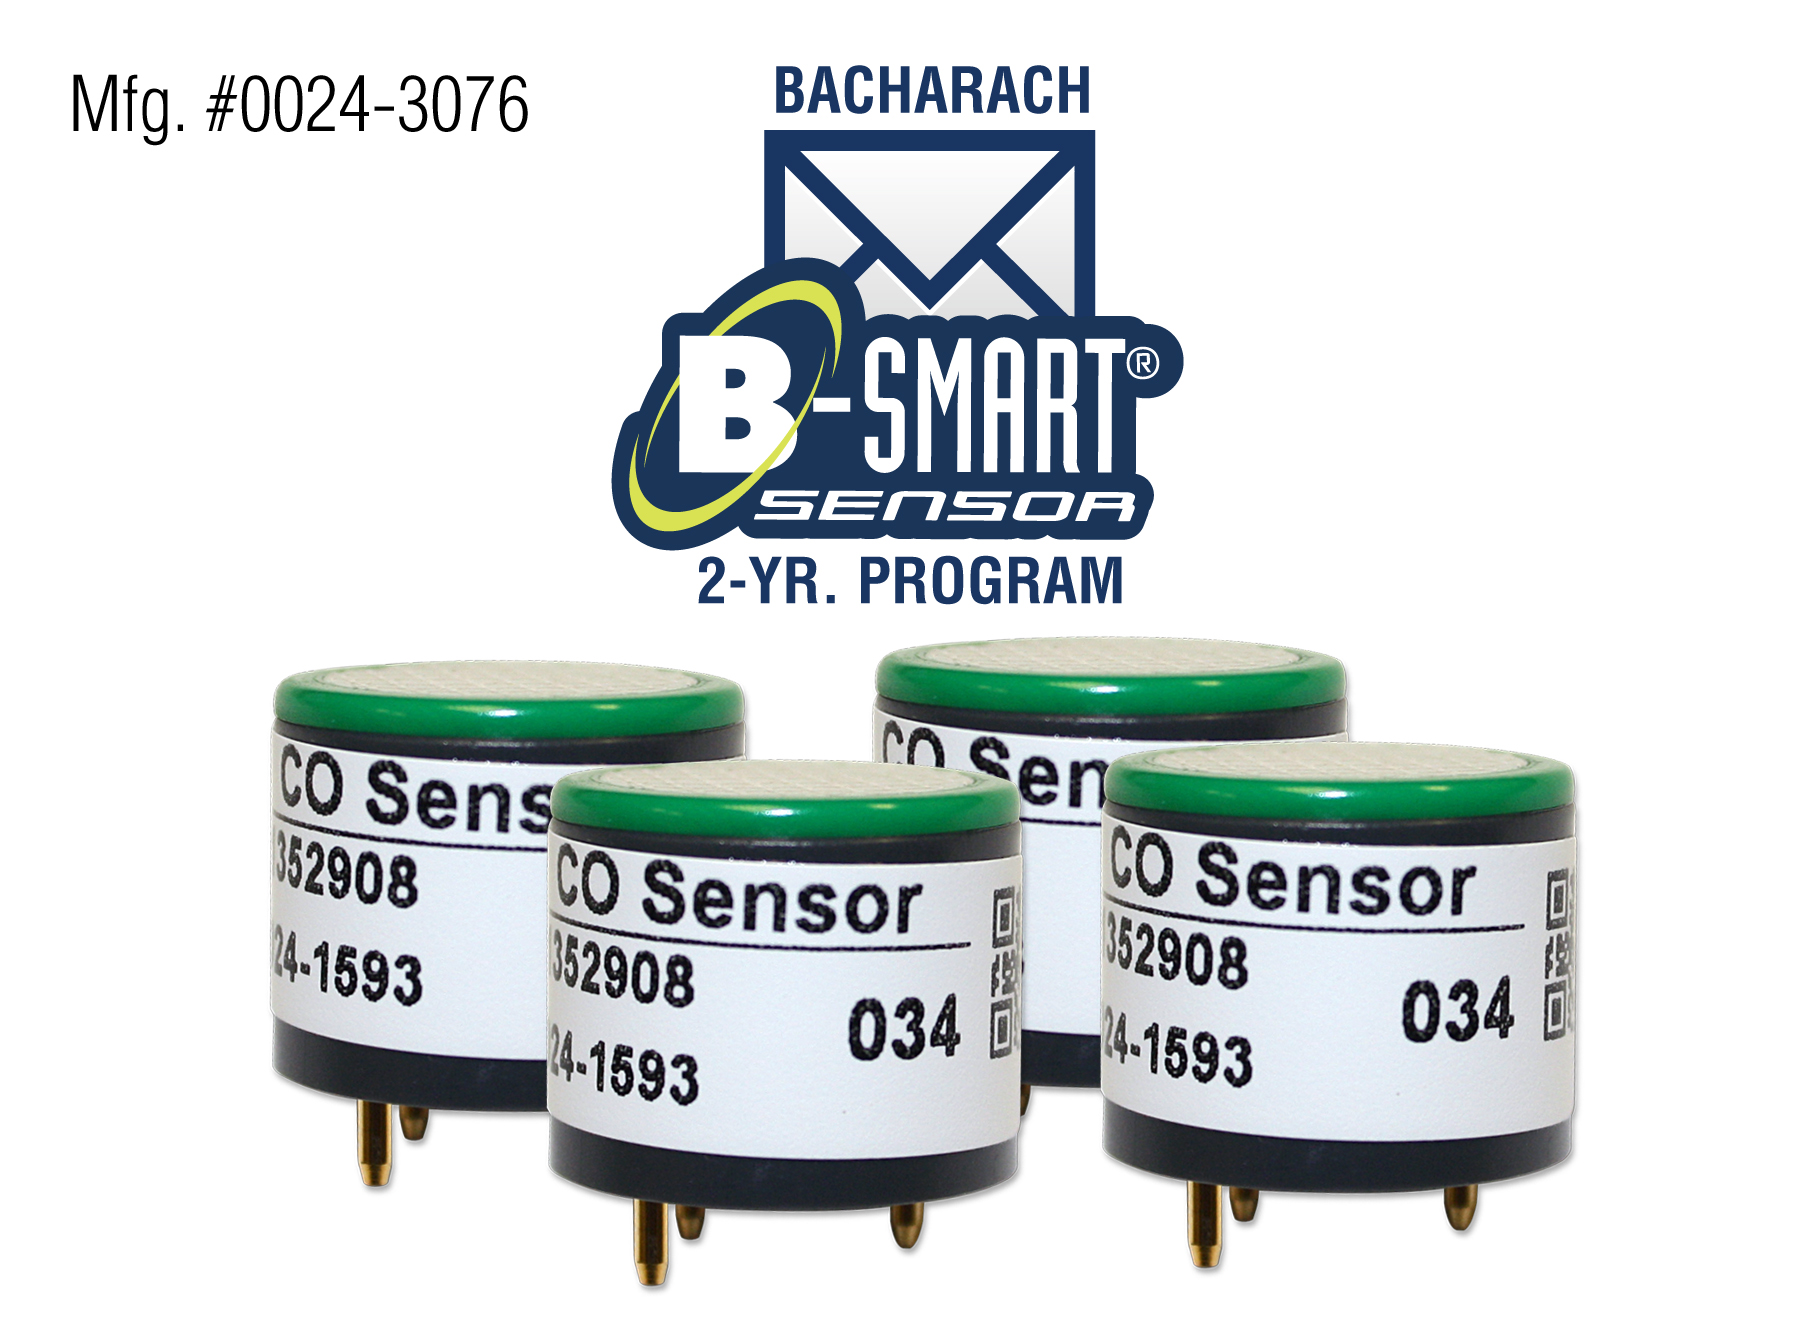 Bacharach 0024-1591Replacement Long-life O2 Sensor For the Fyrite Insigt Plus